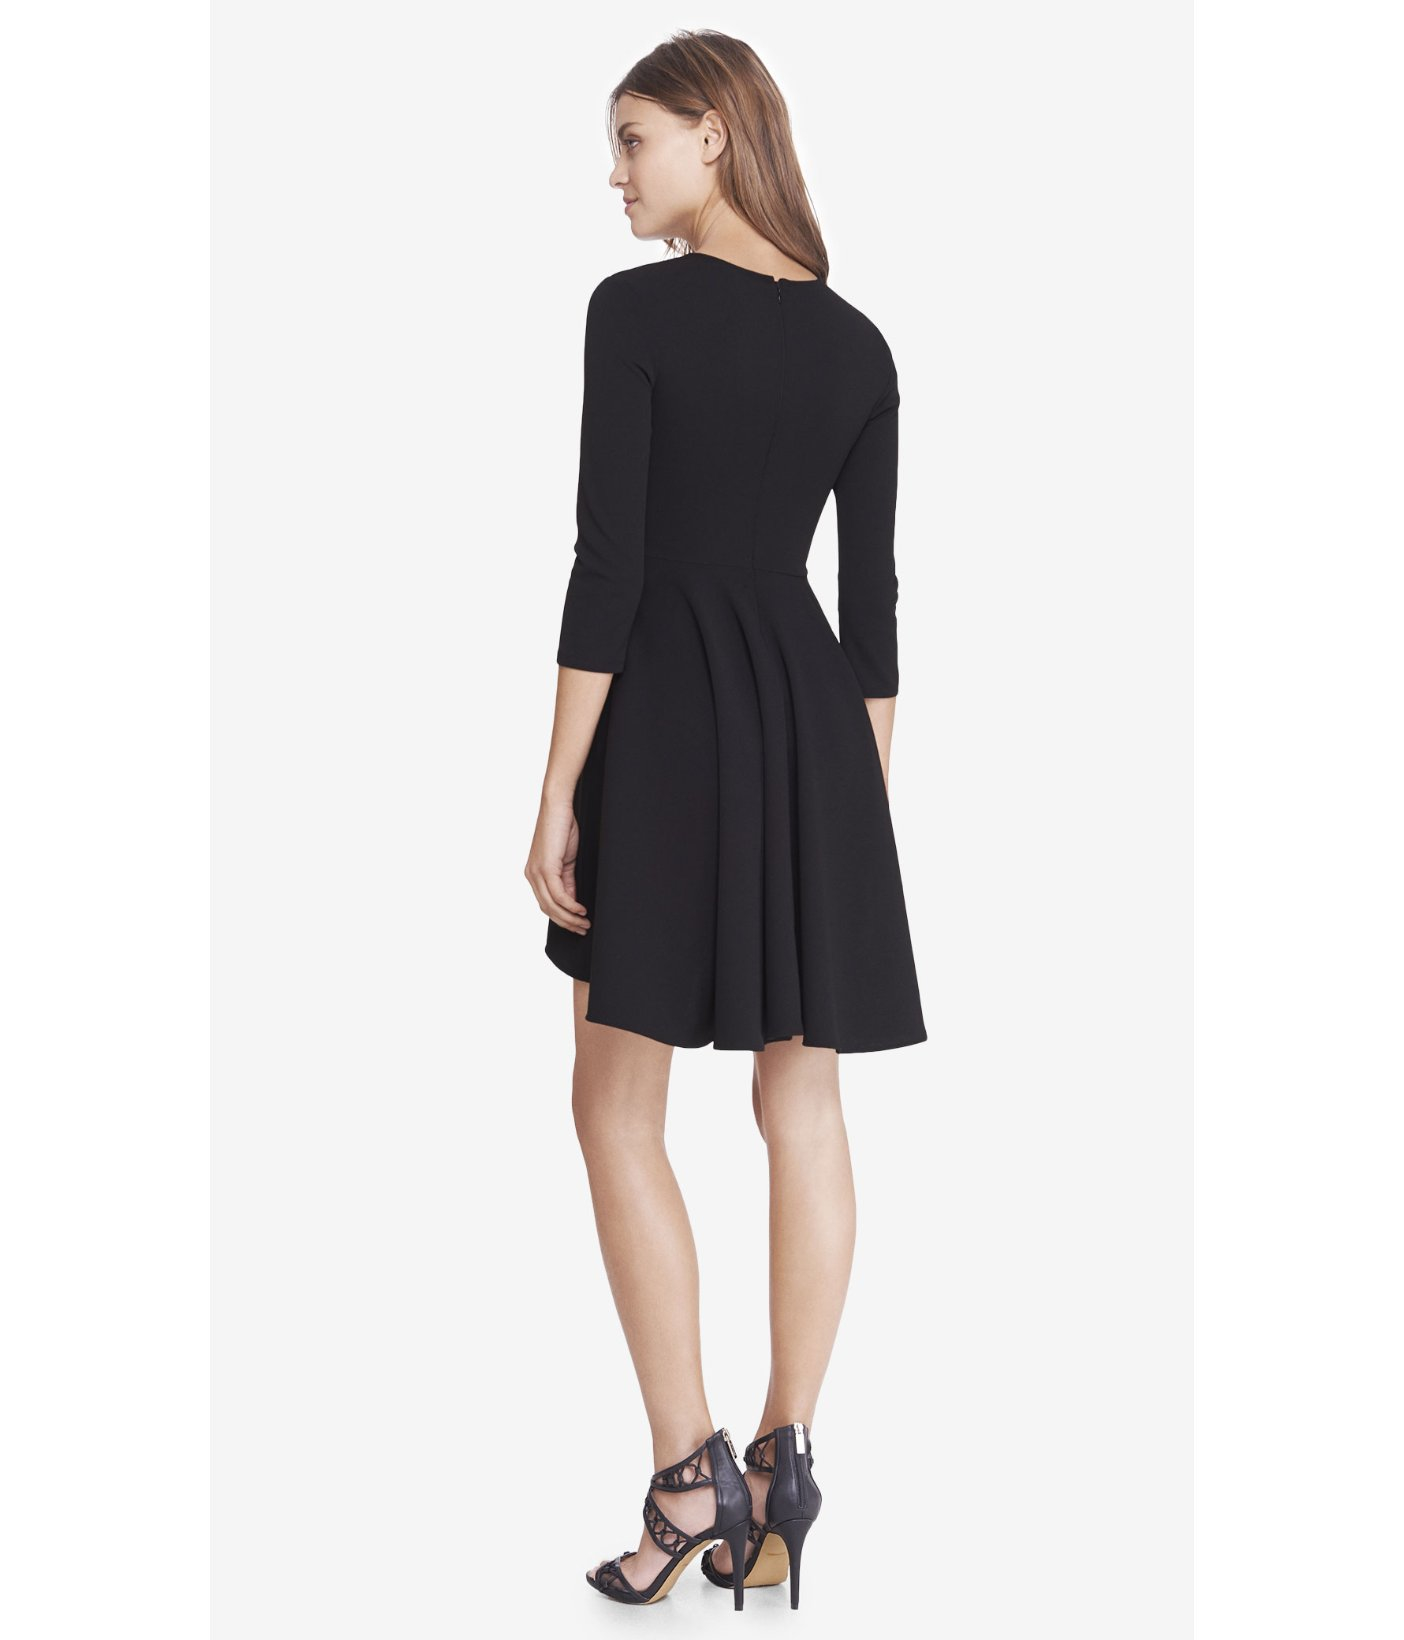 Lo lo lord and taylor party dresses - Gallery